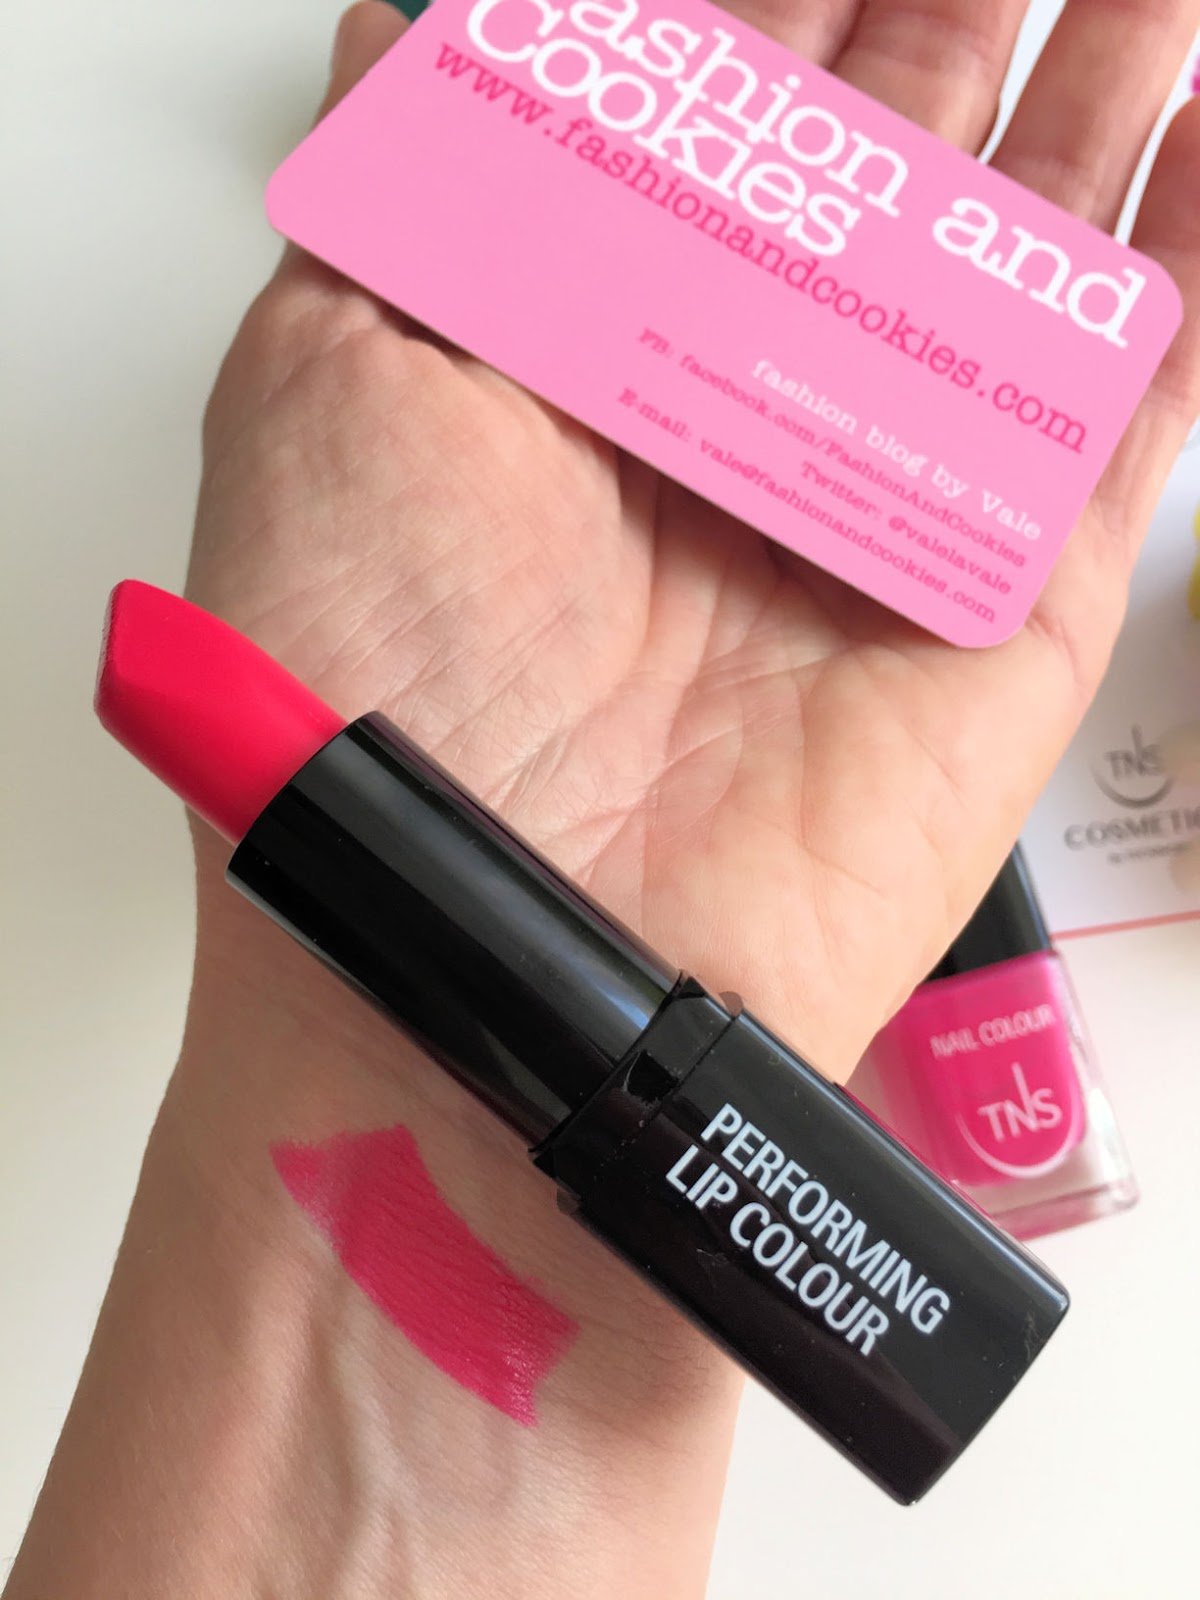 TNS Cosmetics Wild Flower lipstick swatch and review on Fashion and Cookies beauty blog, beauty blogger